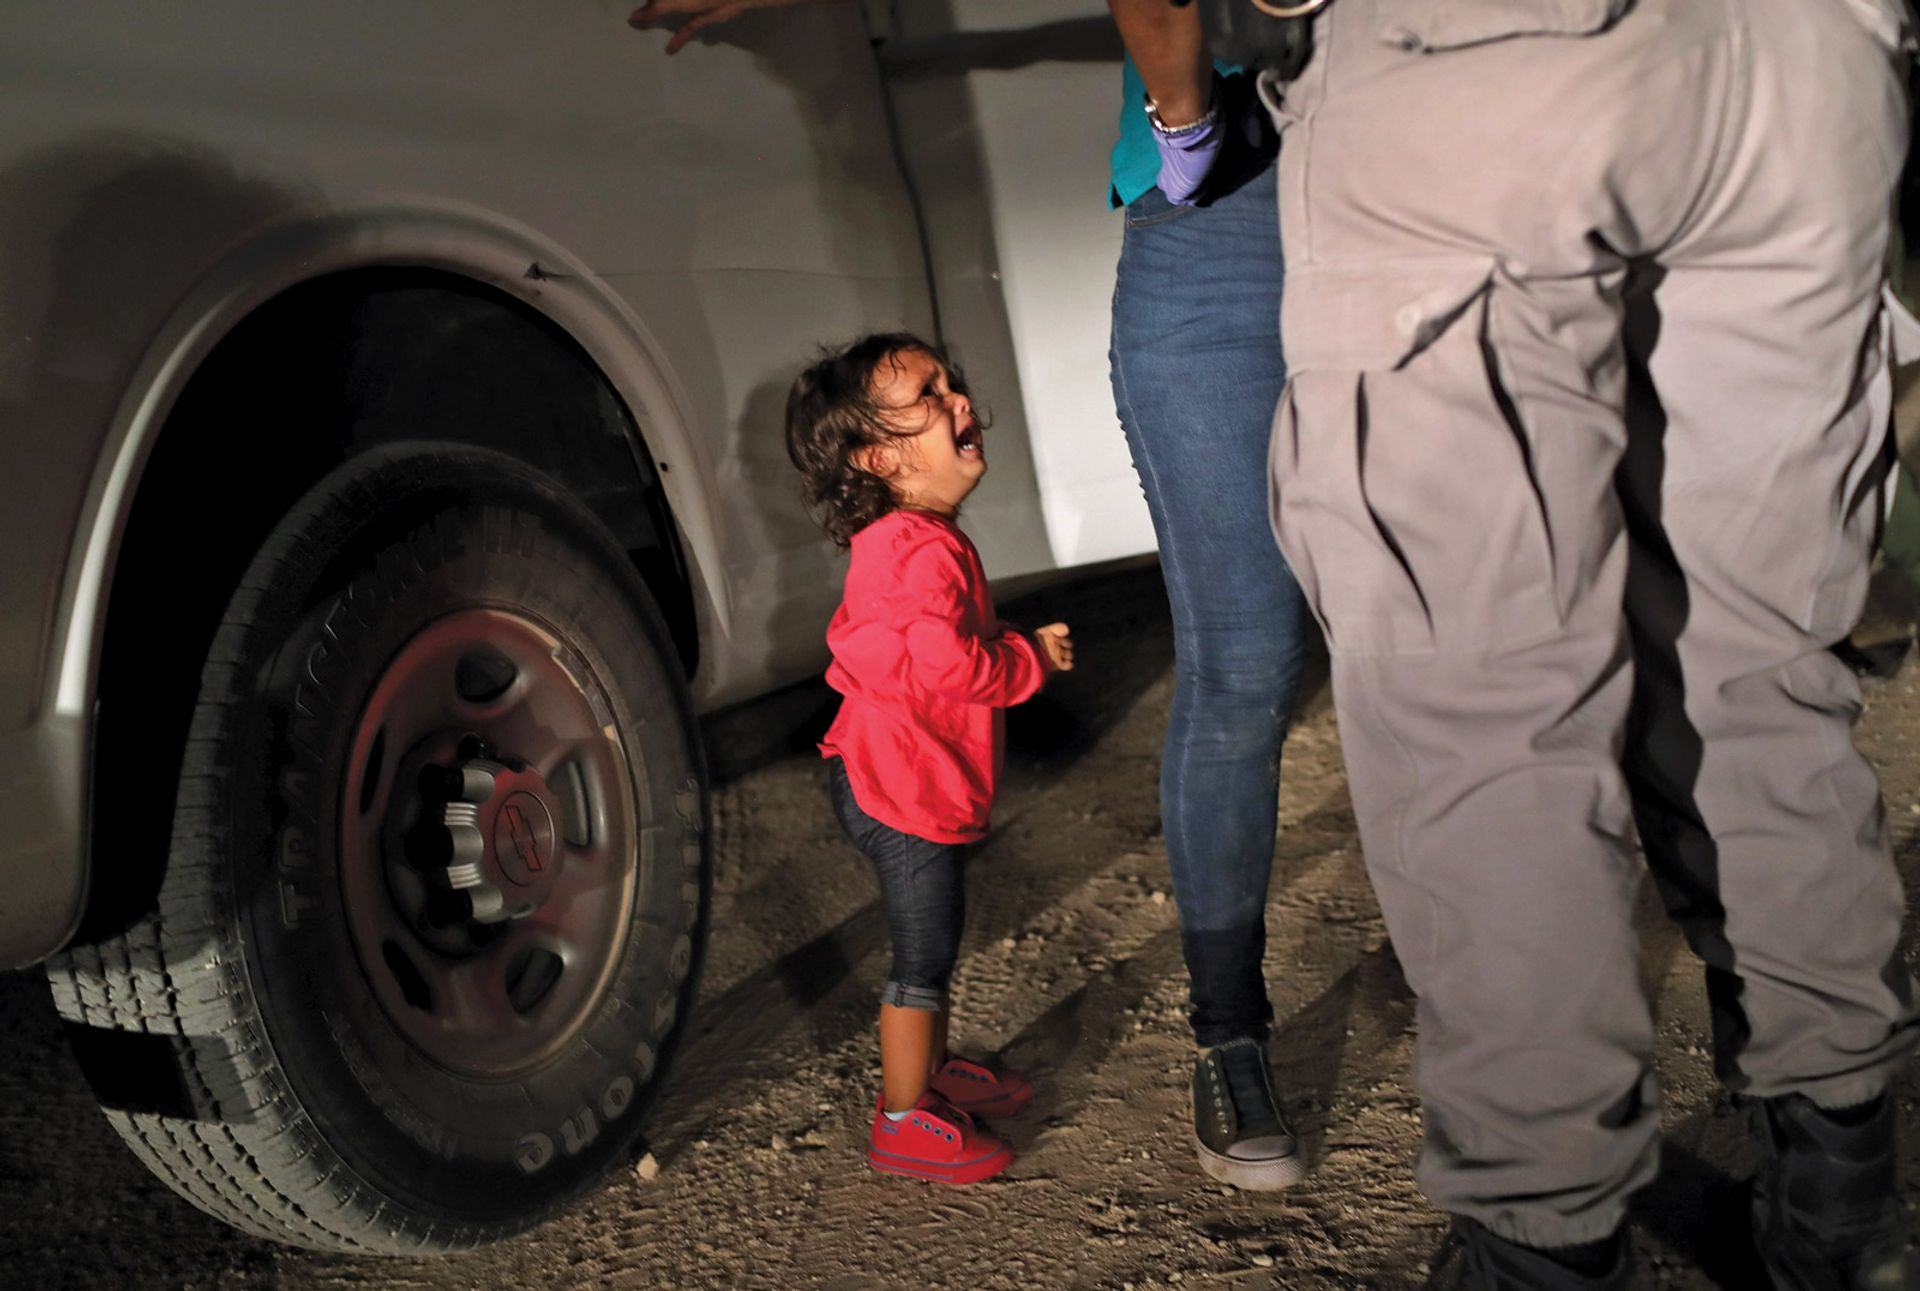 John Moore's shocking picture of two-year-old Yanela Hernandez John Moore/Getty Images, 2018